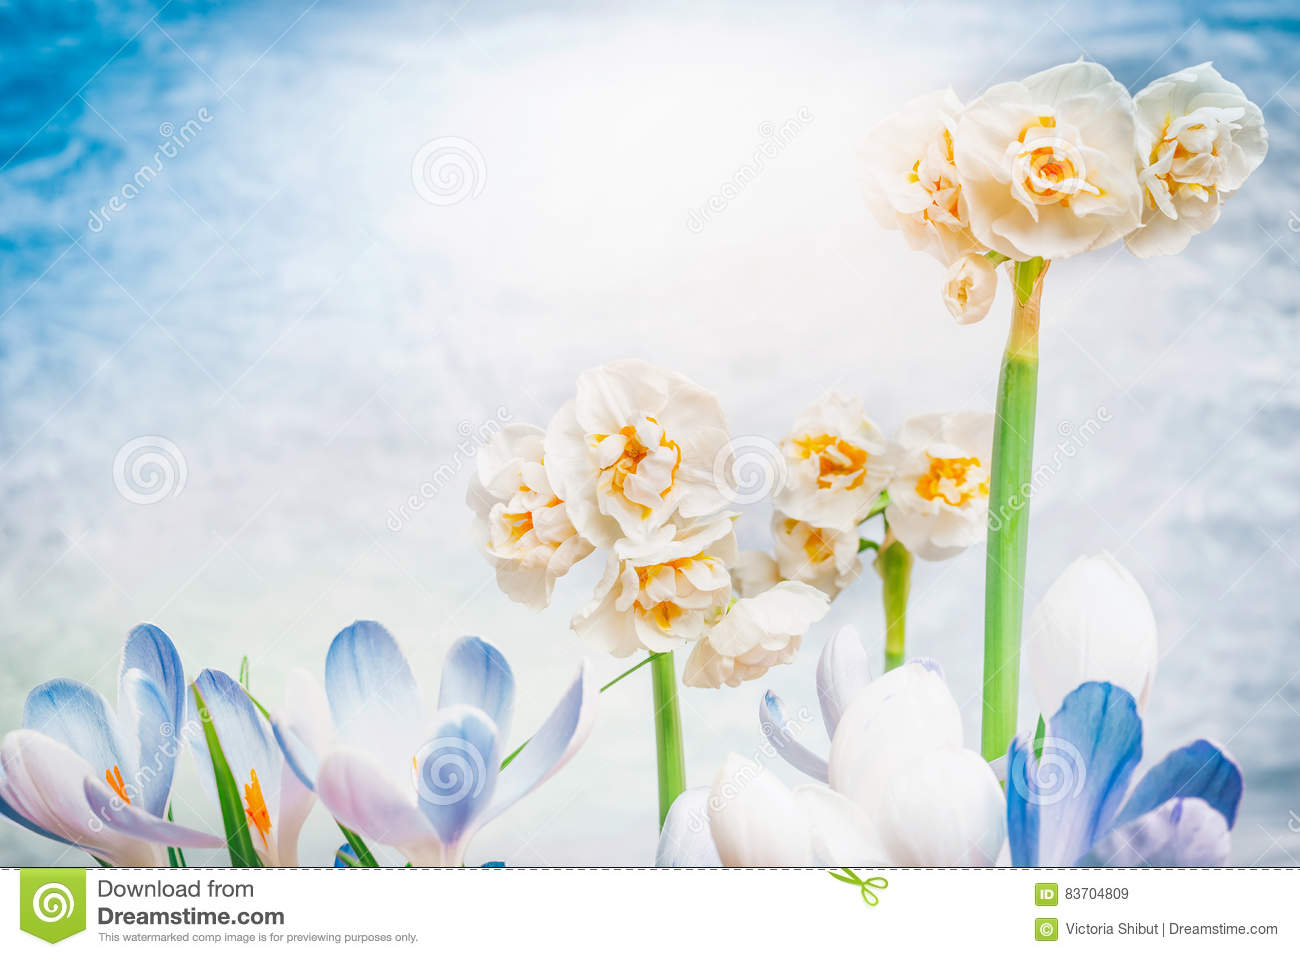 Spring Flowers Blooming At Sky Background, Floral Natue Stock Photo